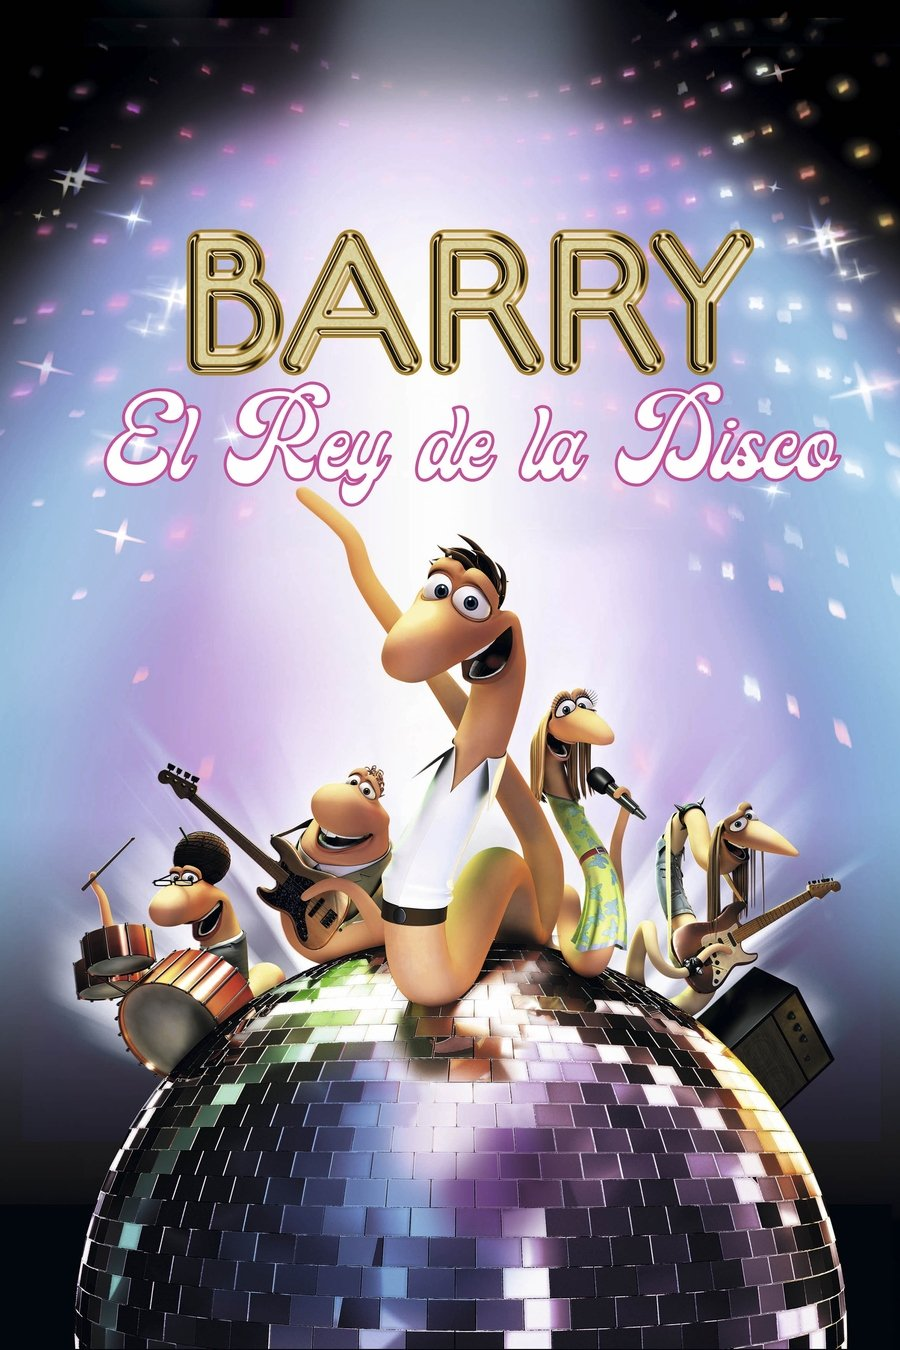 Barry, el Rey de la Disco